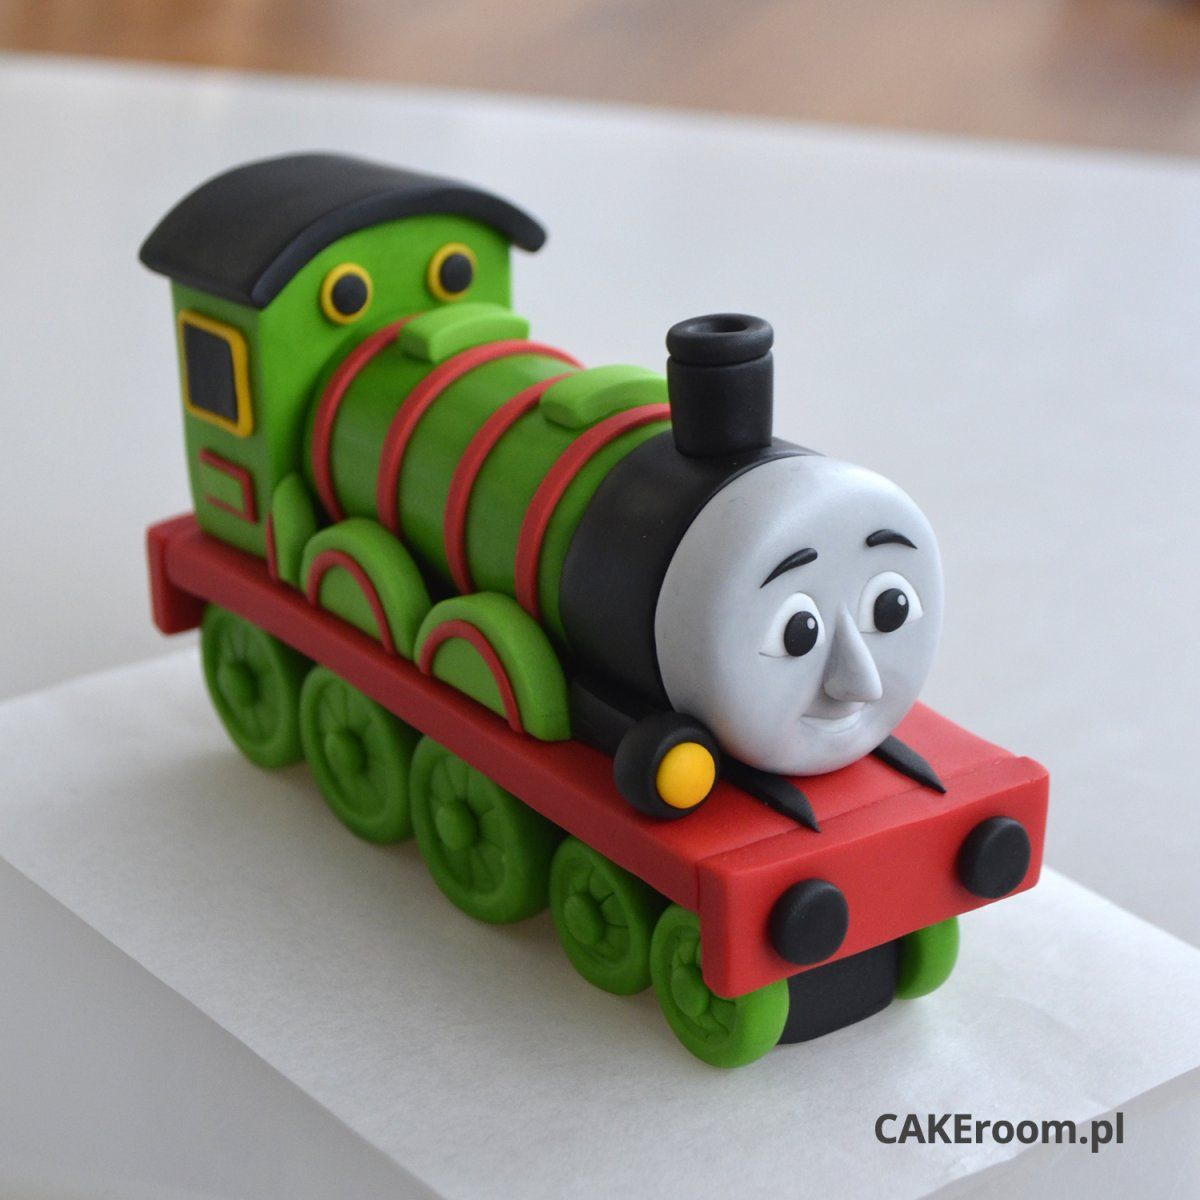 Thomas The Tank Topper Cakeroom Pl A Meeting Place For Decorators Cakes